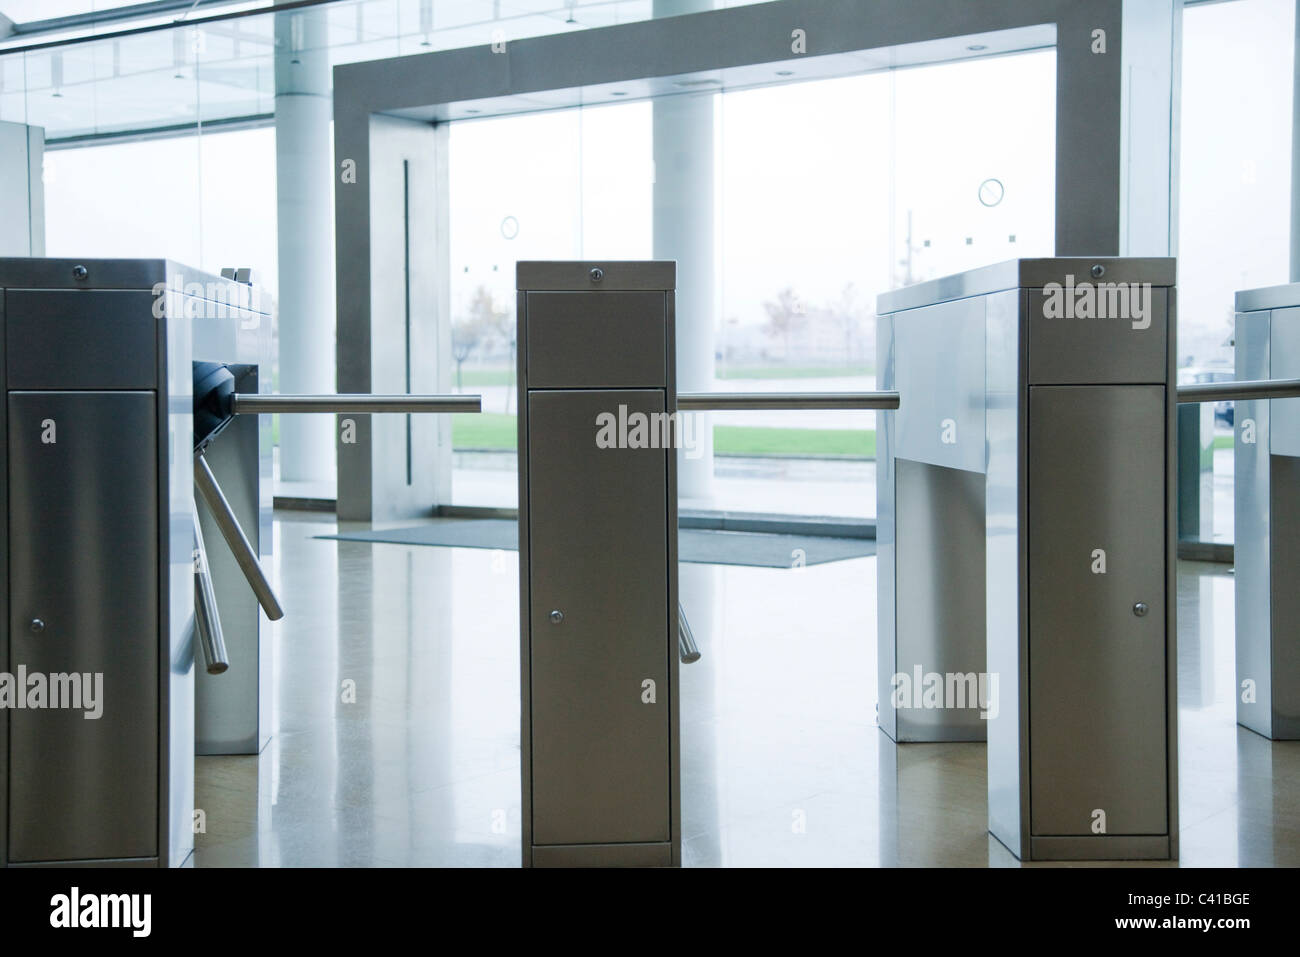 Turnstiles in building lobby - Stock Image